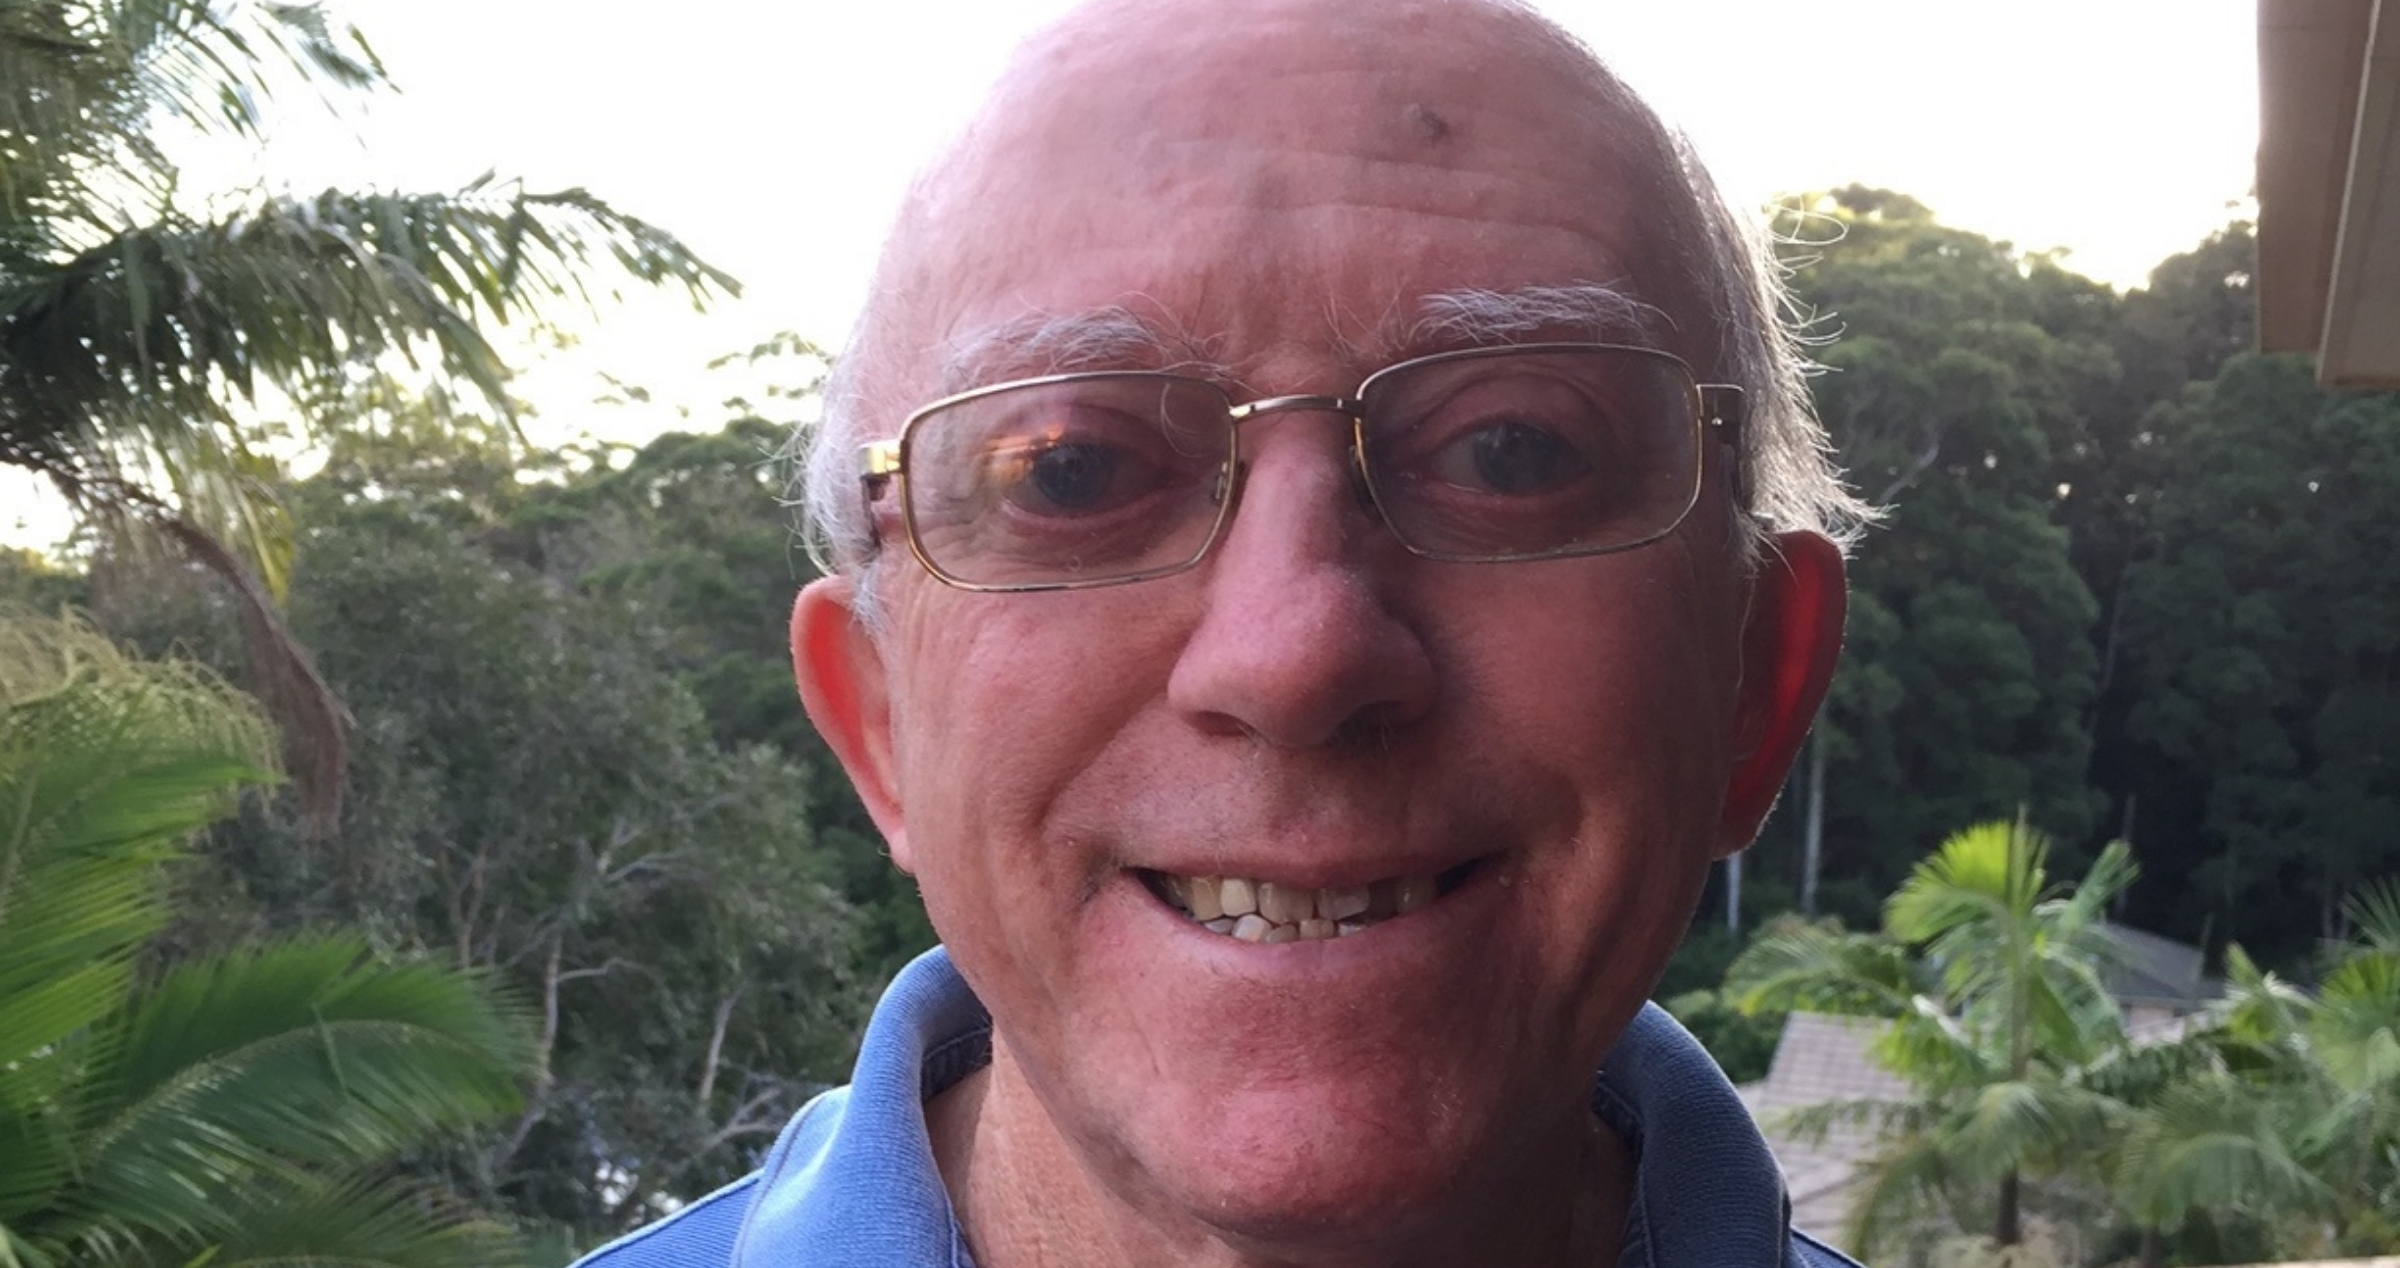 Image of smiling man with glasses and blue polo shirt with tropical trees in background